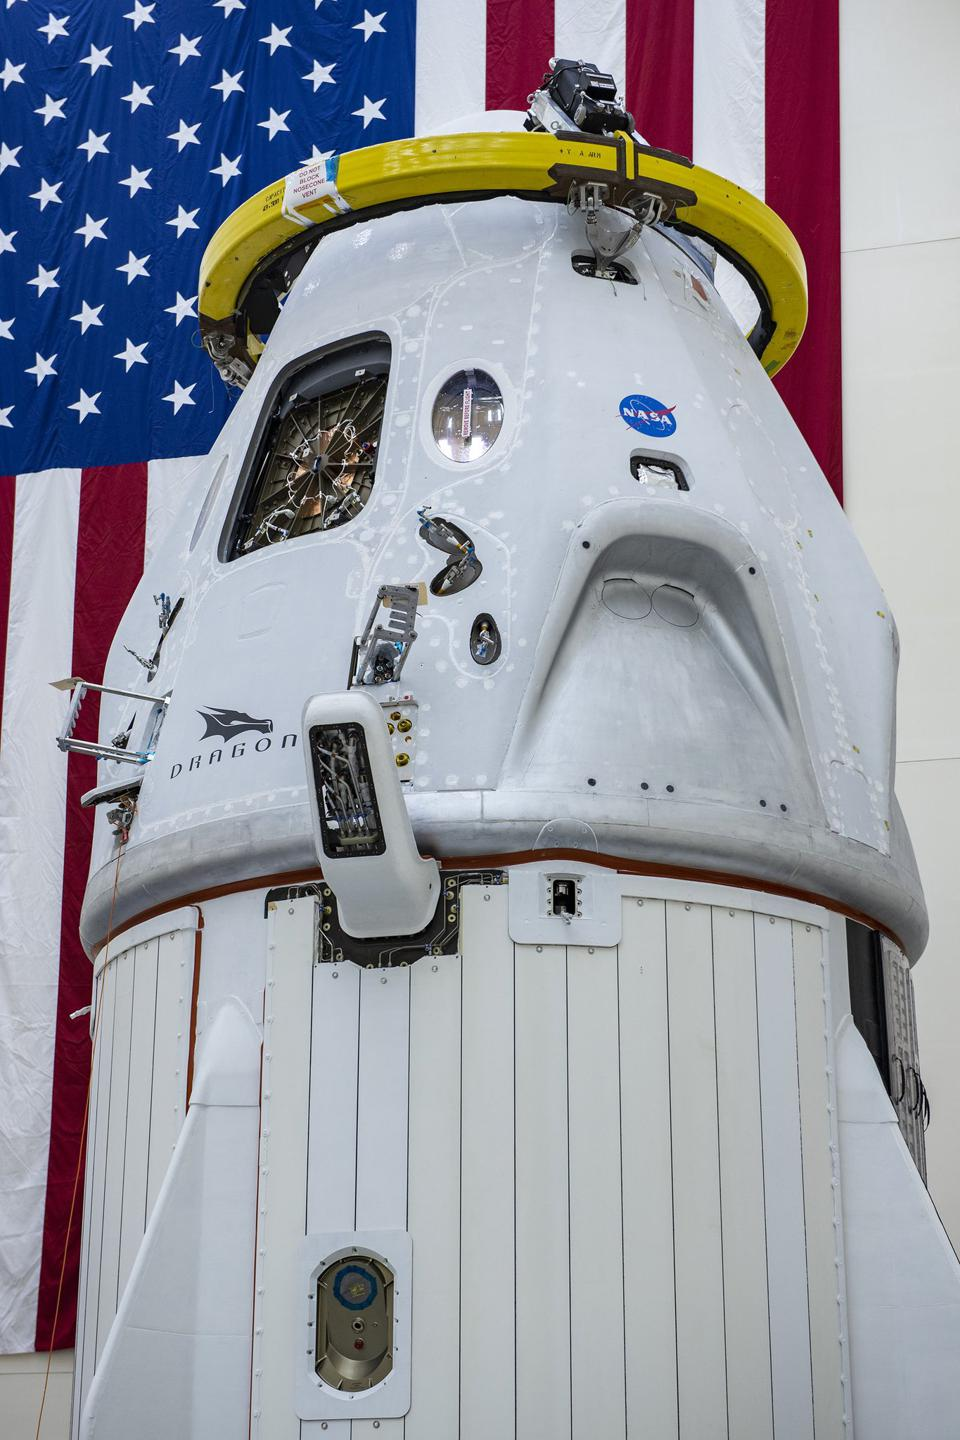 The SpaceX Crew Dragon capsule at Cape Canaveral.